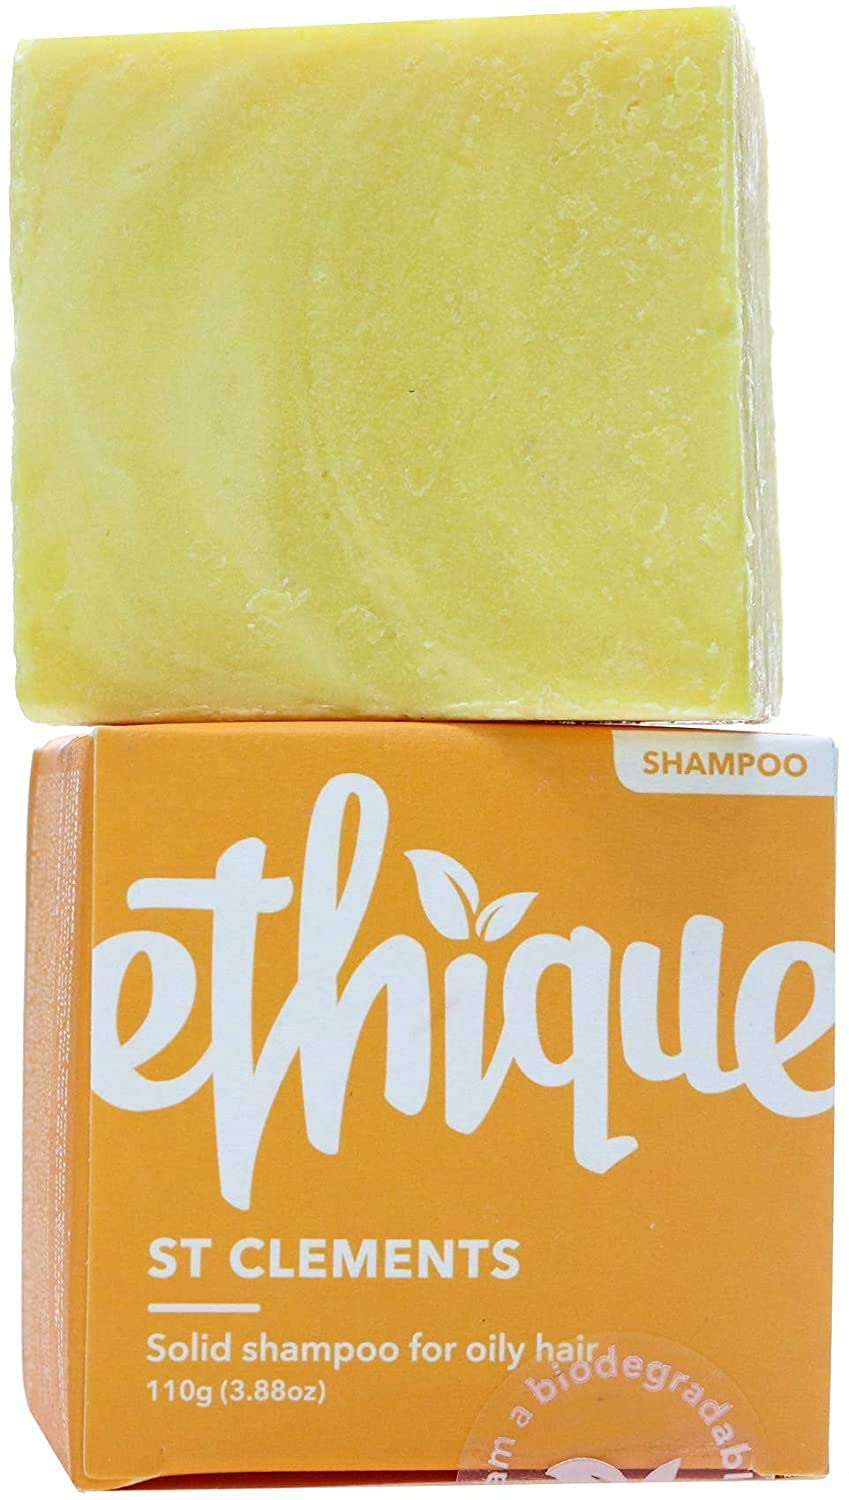 Ethique Shampoo Bar for Oily Hair, St. Clements - Sustainable Natural Cleansing Oily and Greasy Hair Shampoo, Plastic Free, pH Balanced, Vegan, Eco-Friendly 100% Compostable & Zero Waste, 3.88oz